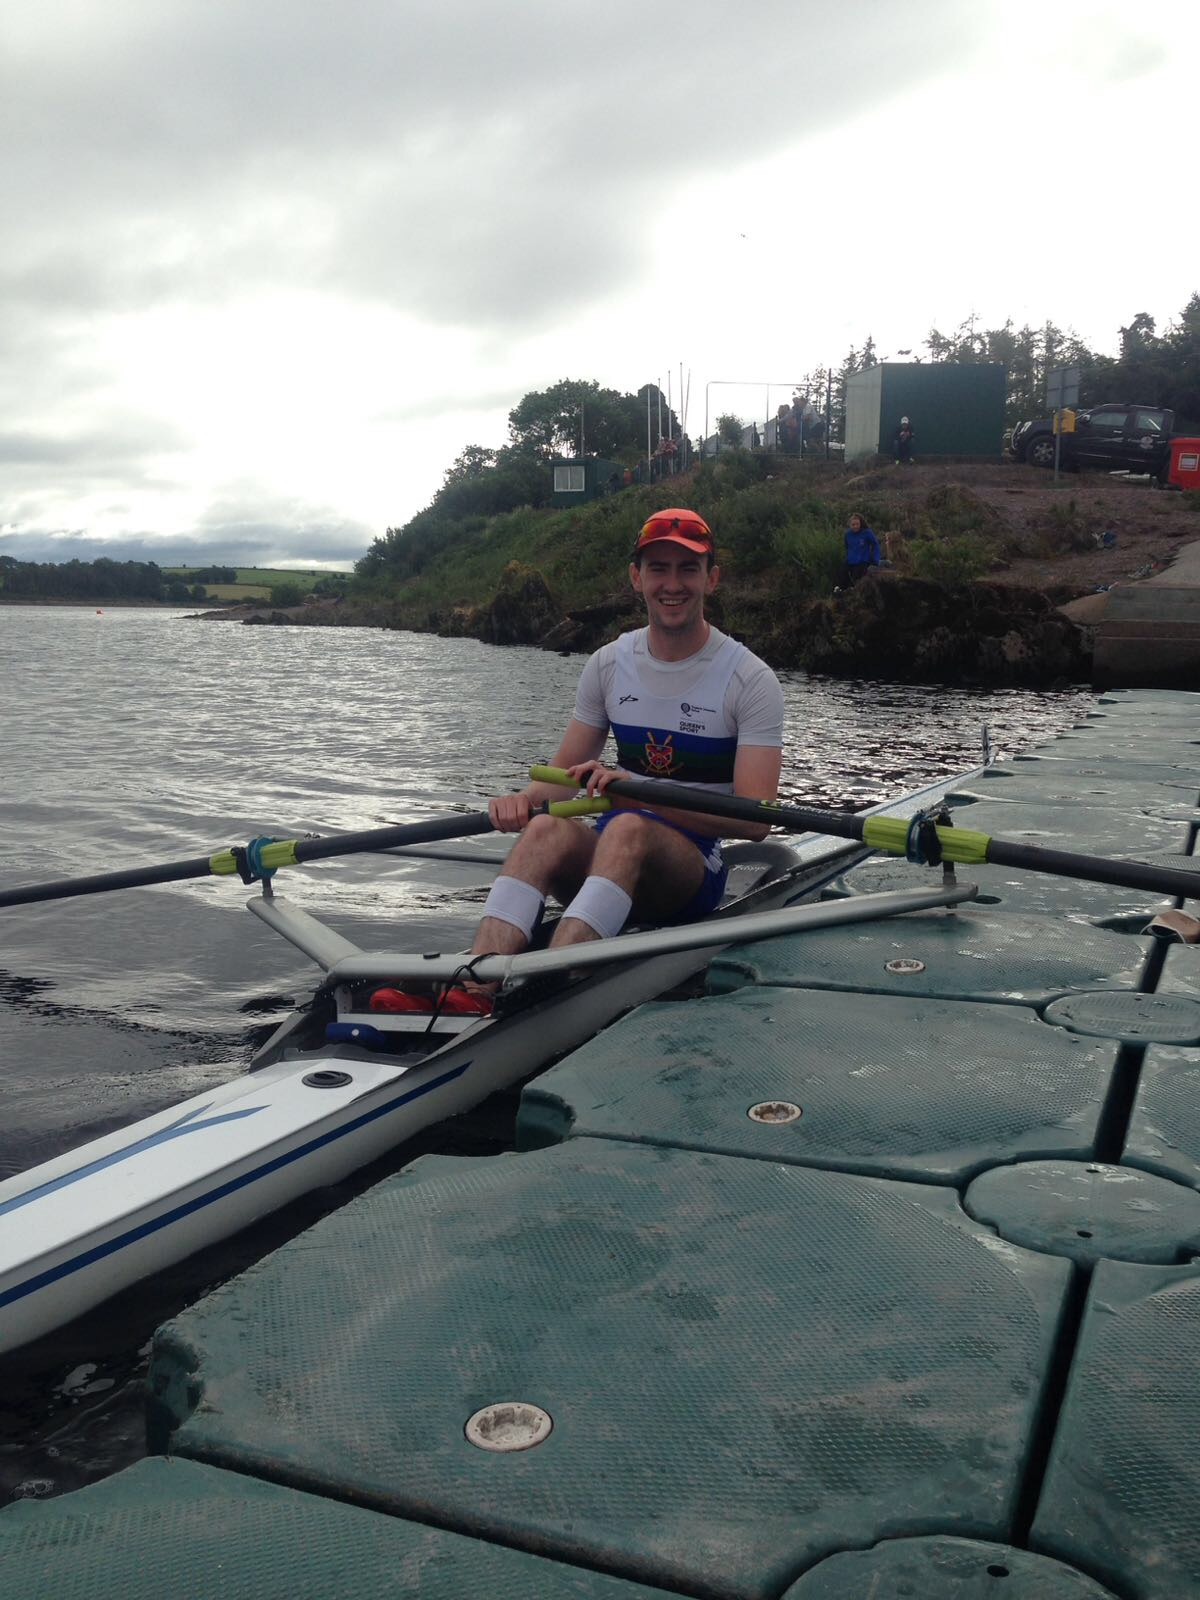 Queen's Rowing at the Home International Regatta 2017. Michael McNamee